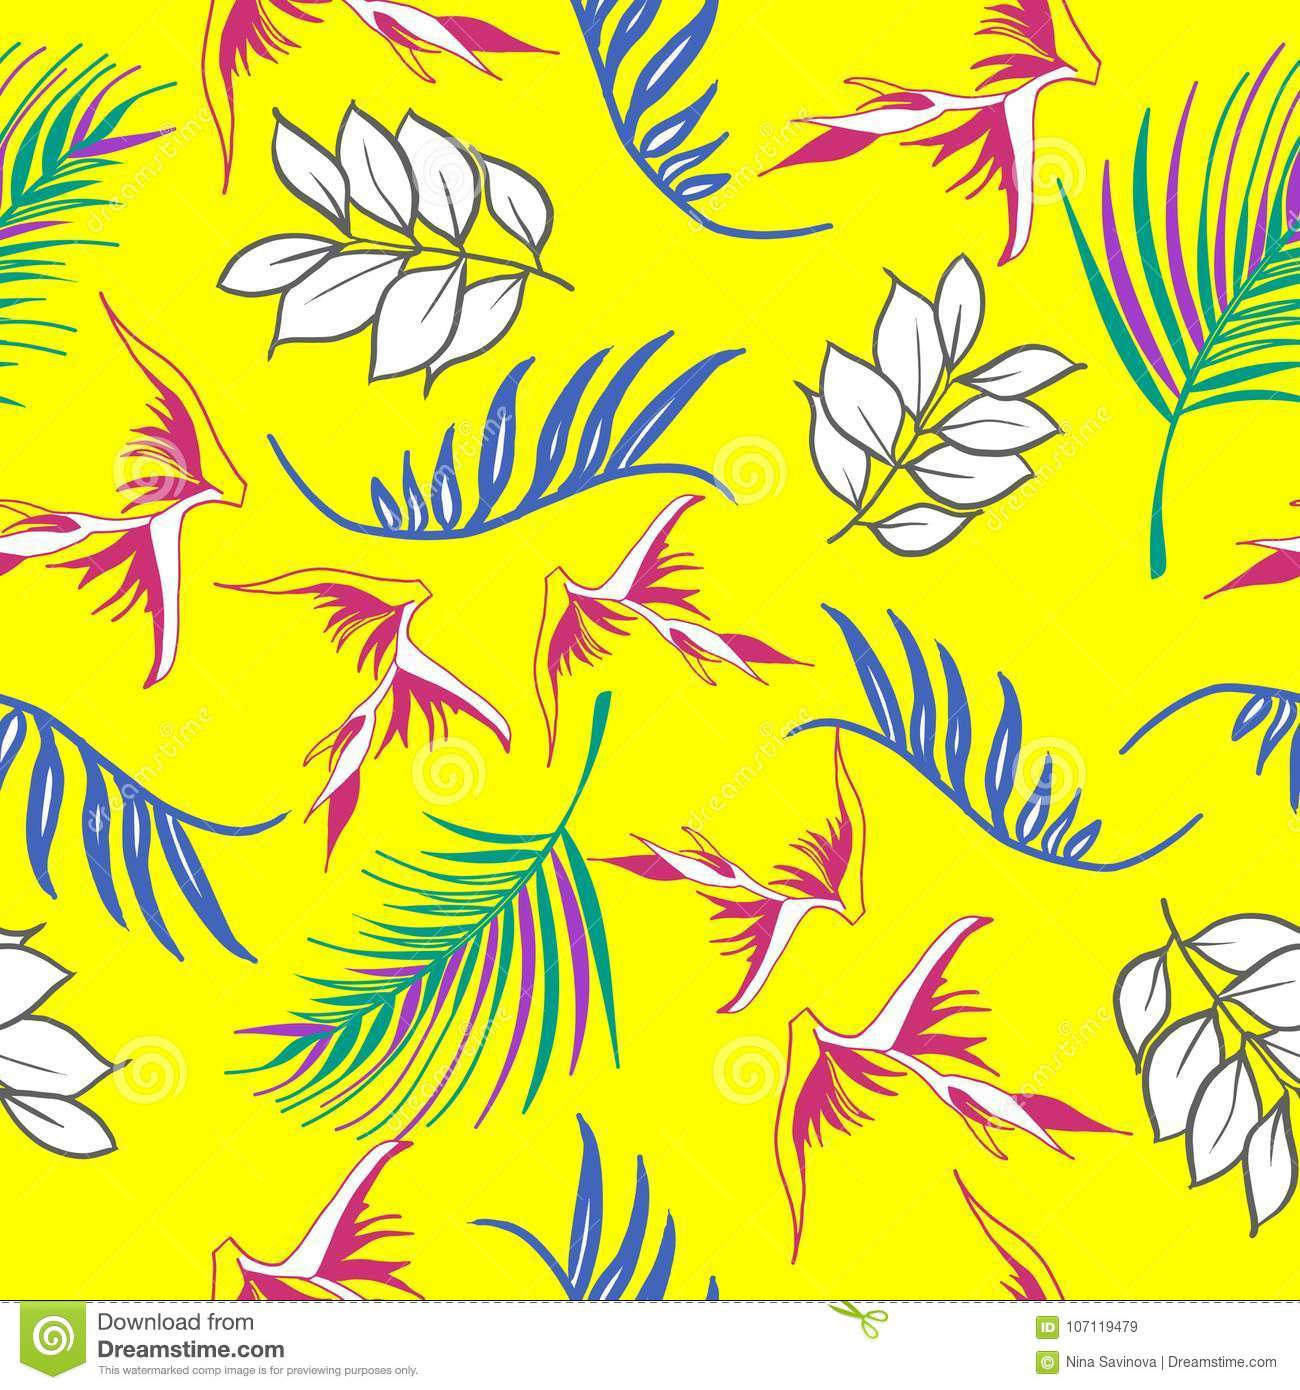 Beautiful and colorful hand drawn hawaiian tropical flowers repeated pattern vector